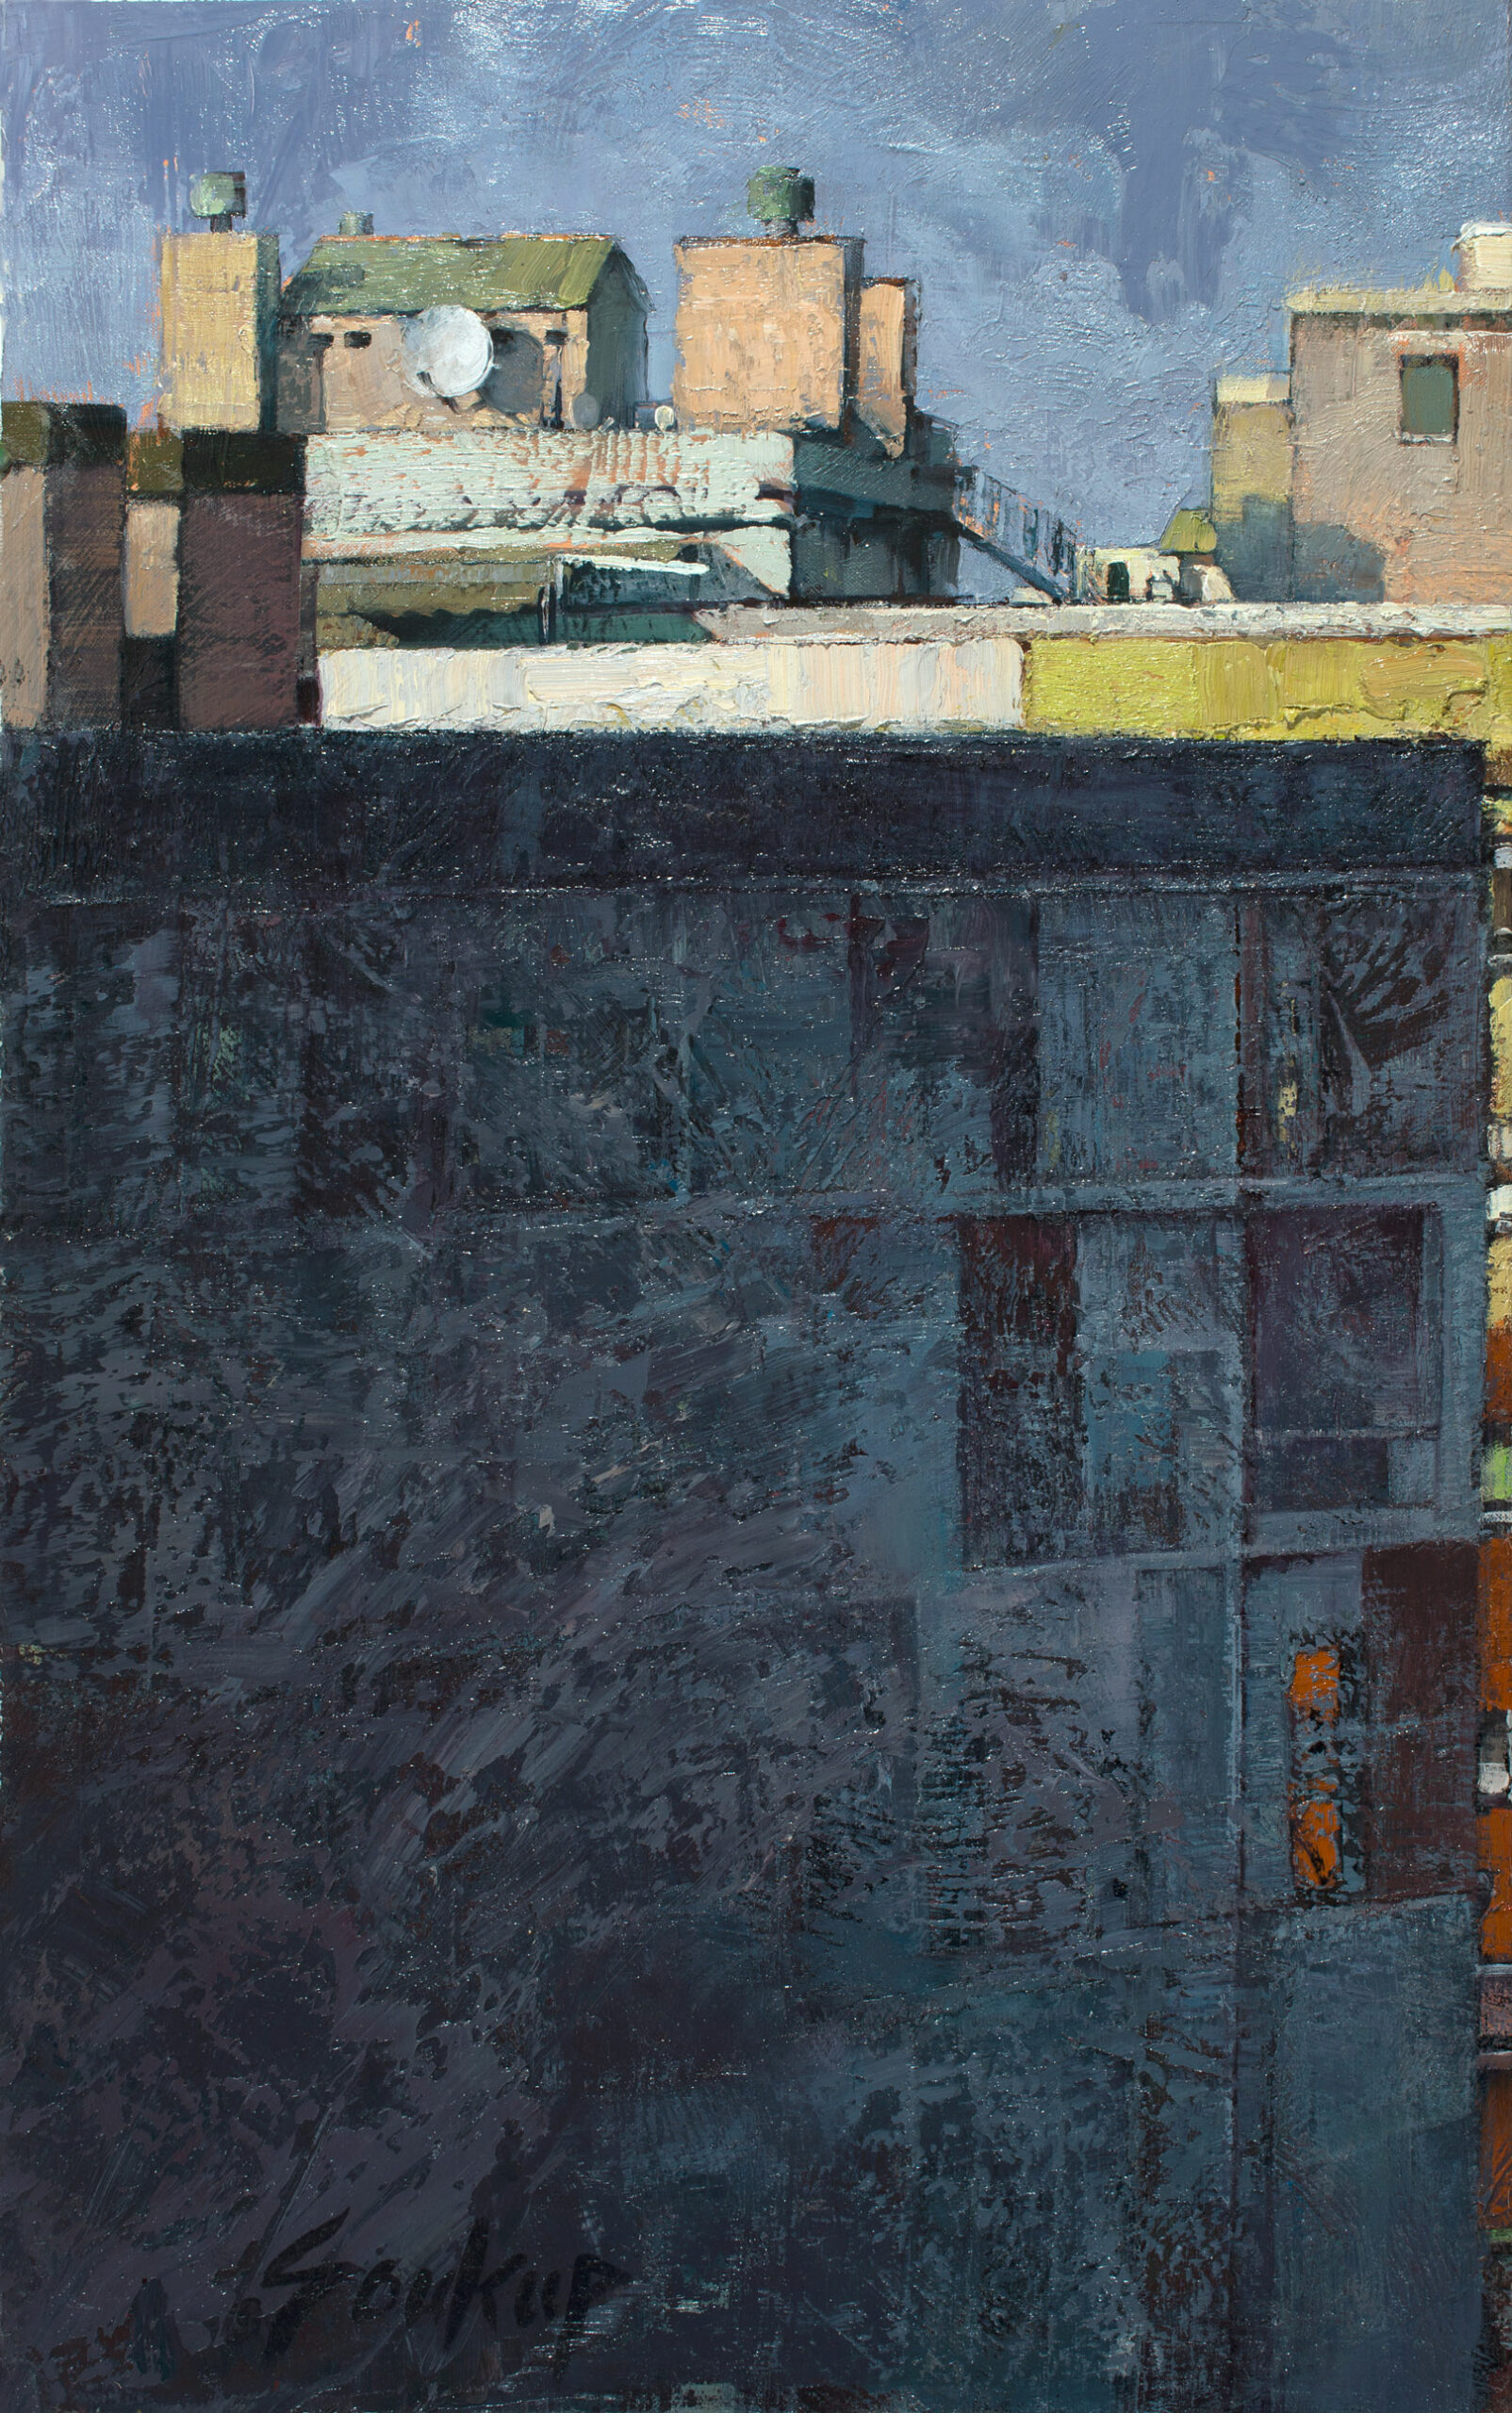 Soukup,-Jill,-Window-View-Barcelona,-39_5-x-24_5_oil-on-canvas,-$7,800